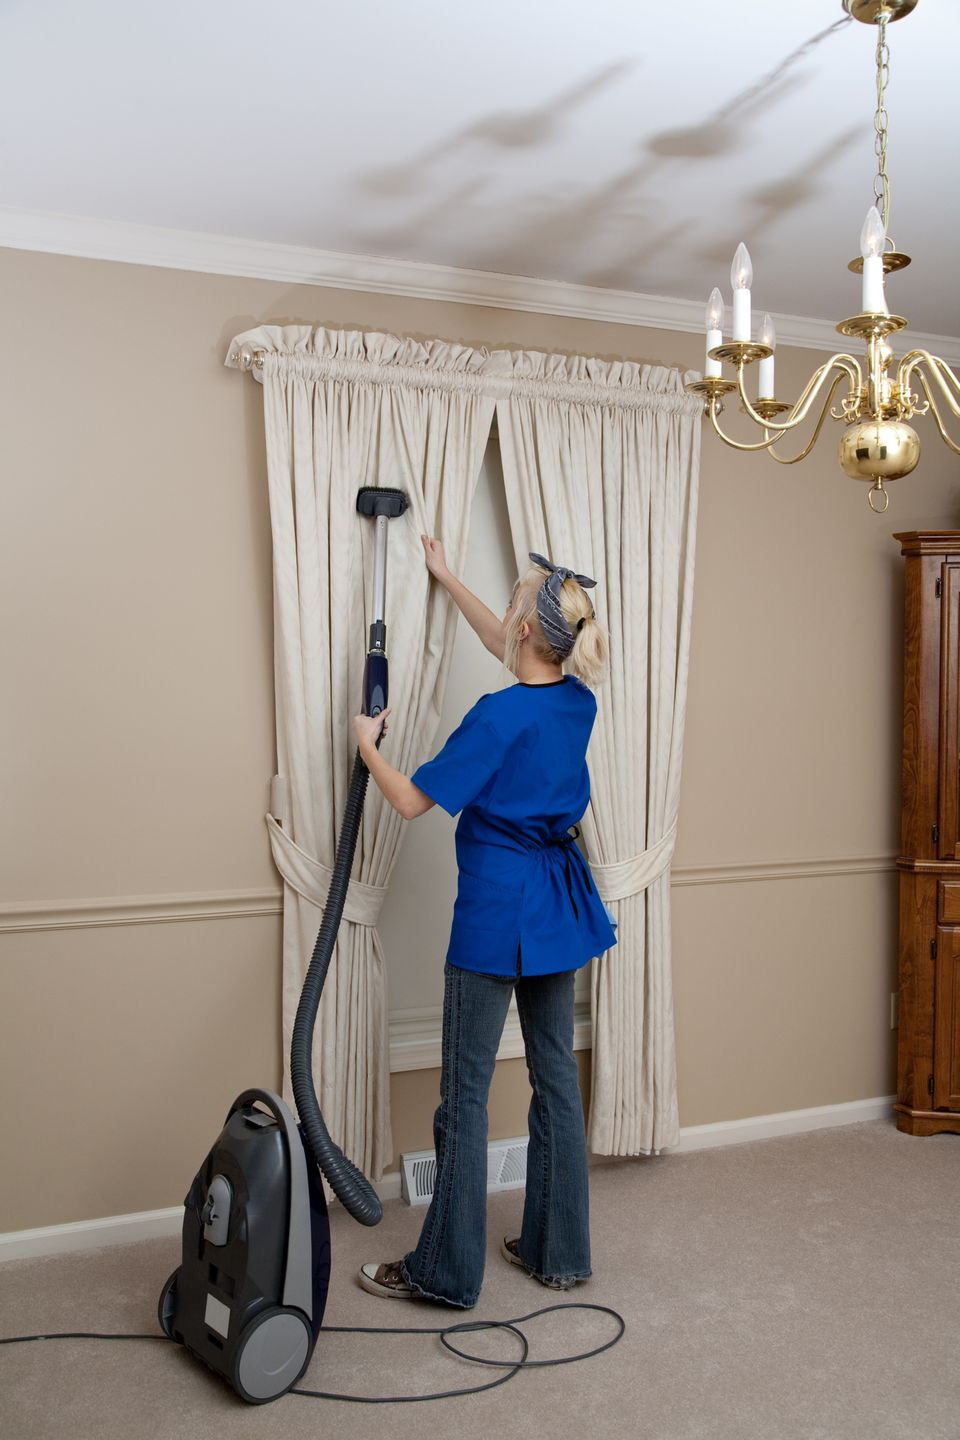 albans drapes harpenden curtain st hertford services welwyn at radlett cleaning clean dry my home key